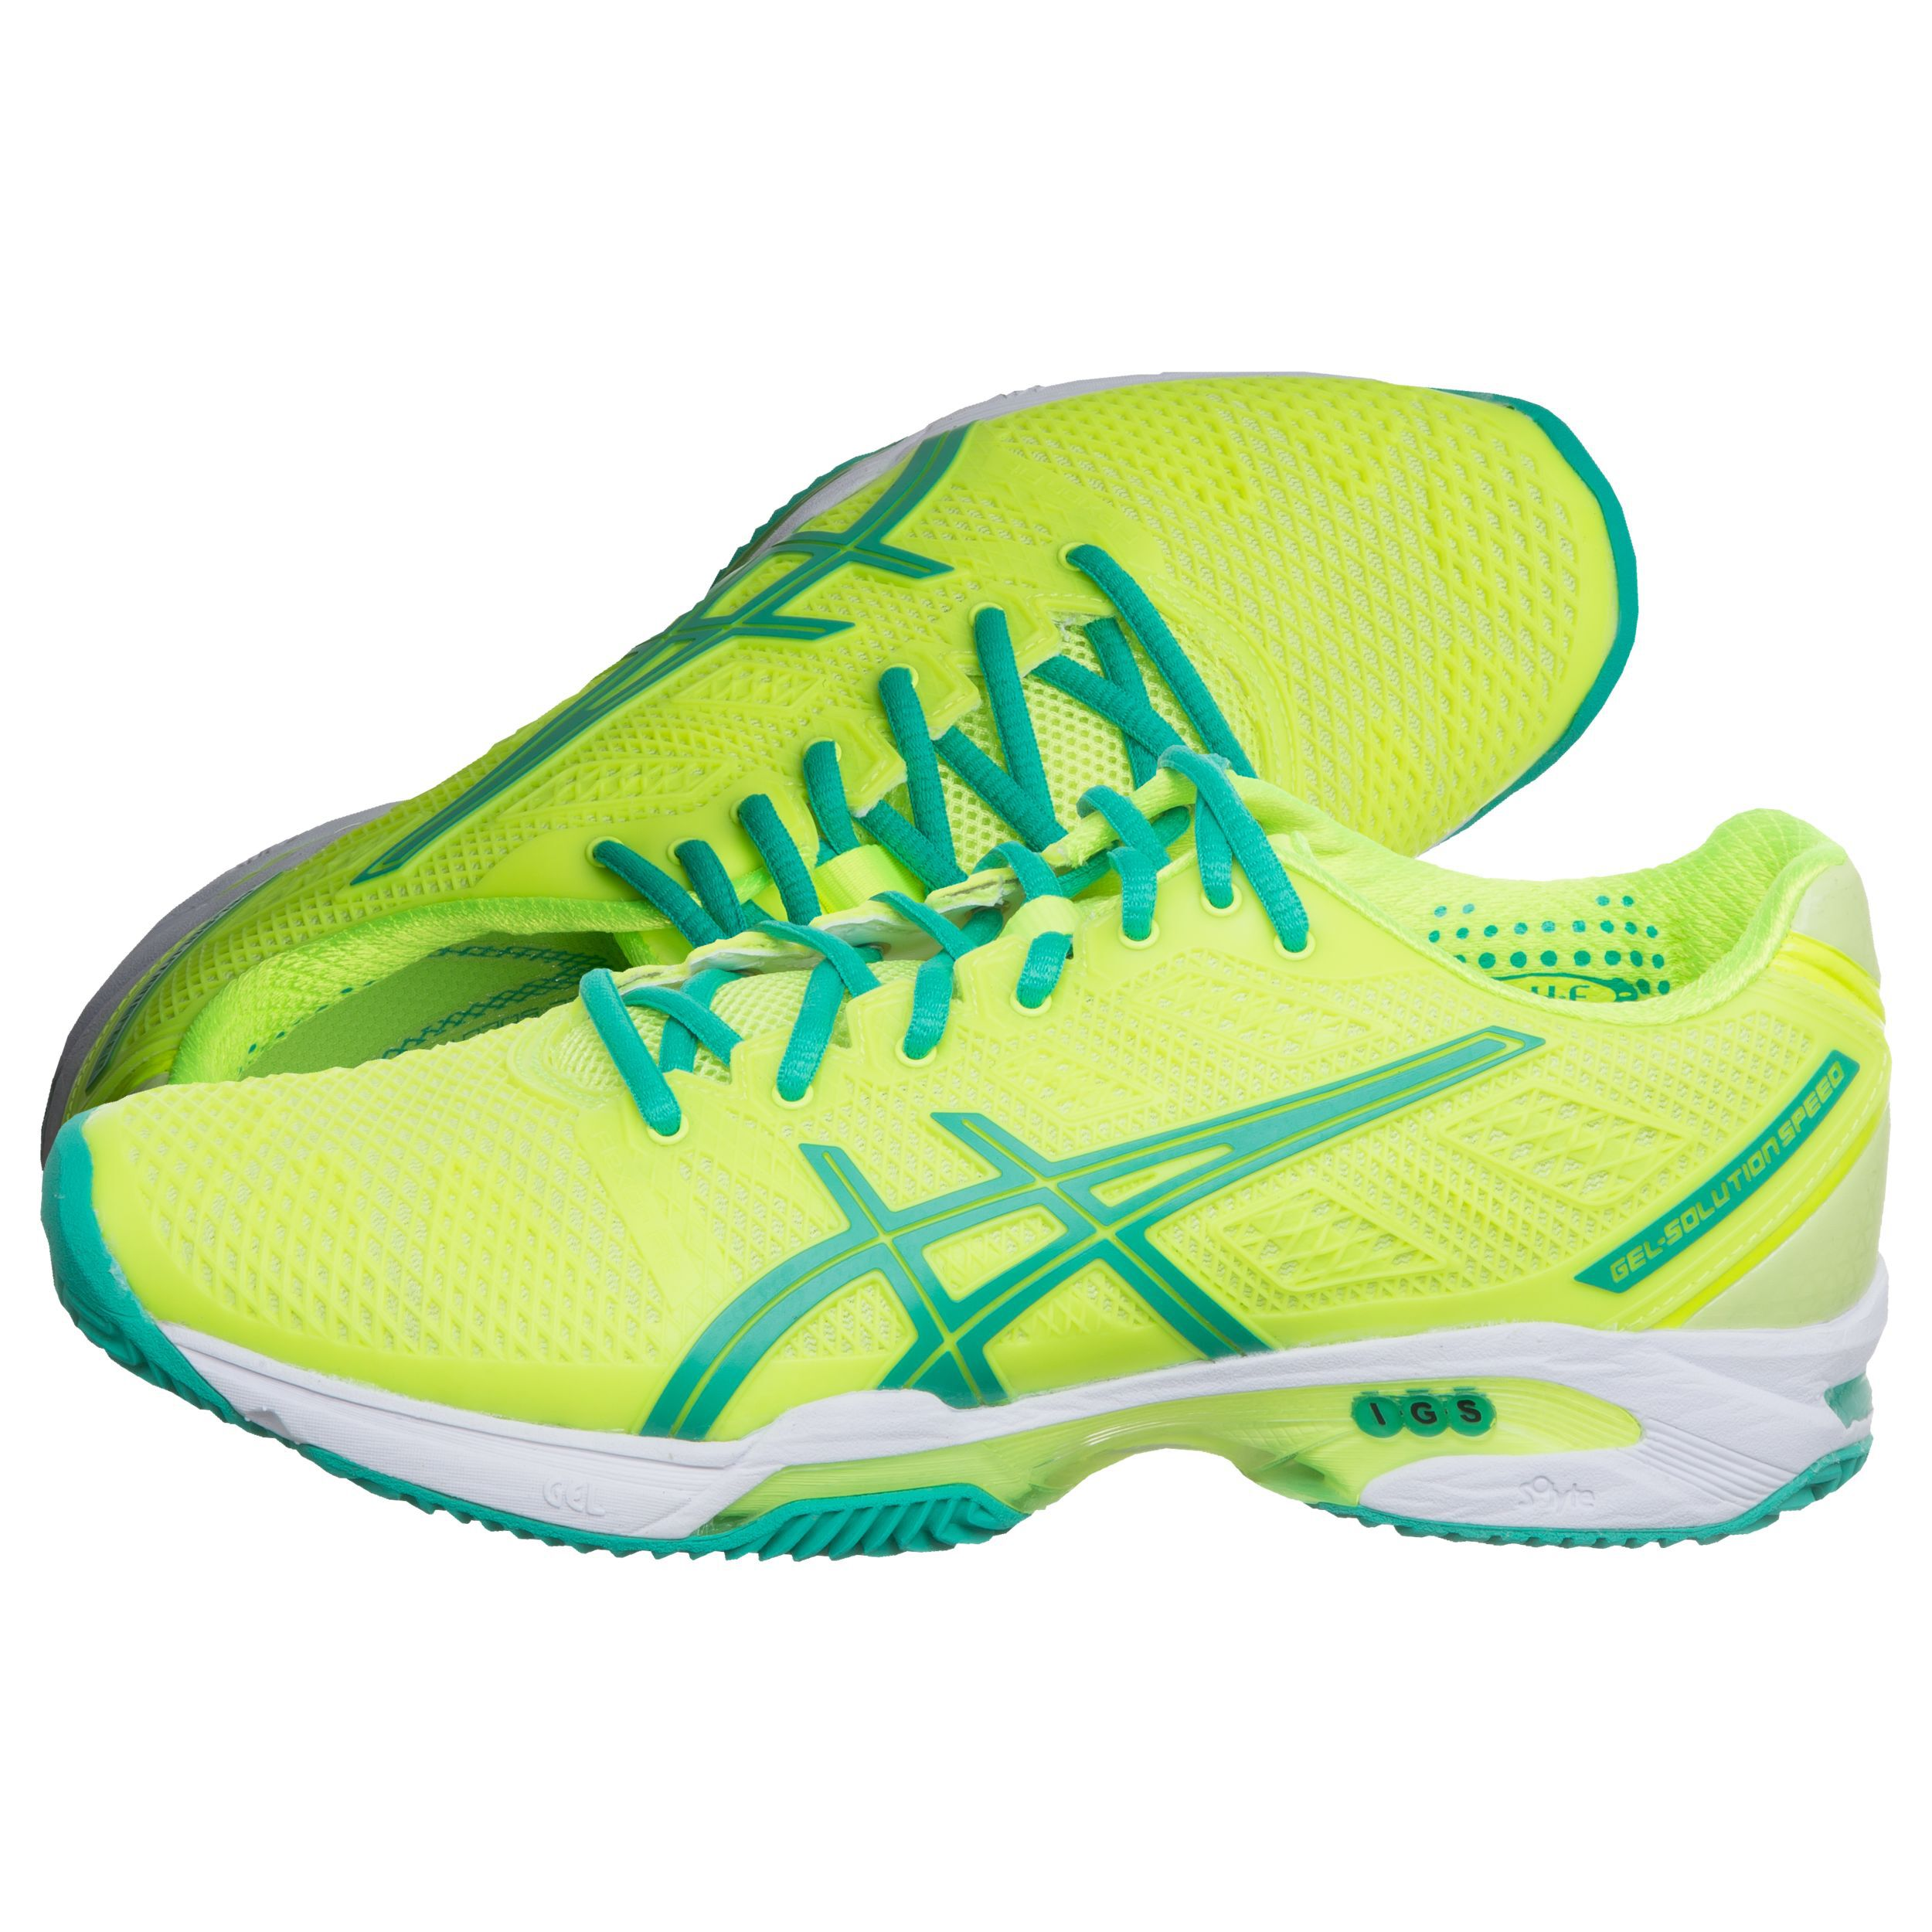 Asics Gel Solution Speed 2 Clay Chaussure Terre Battue